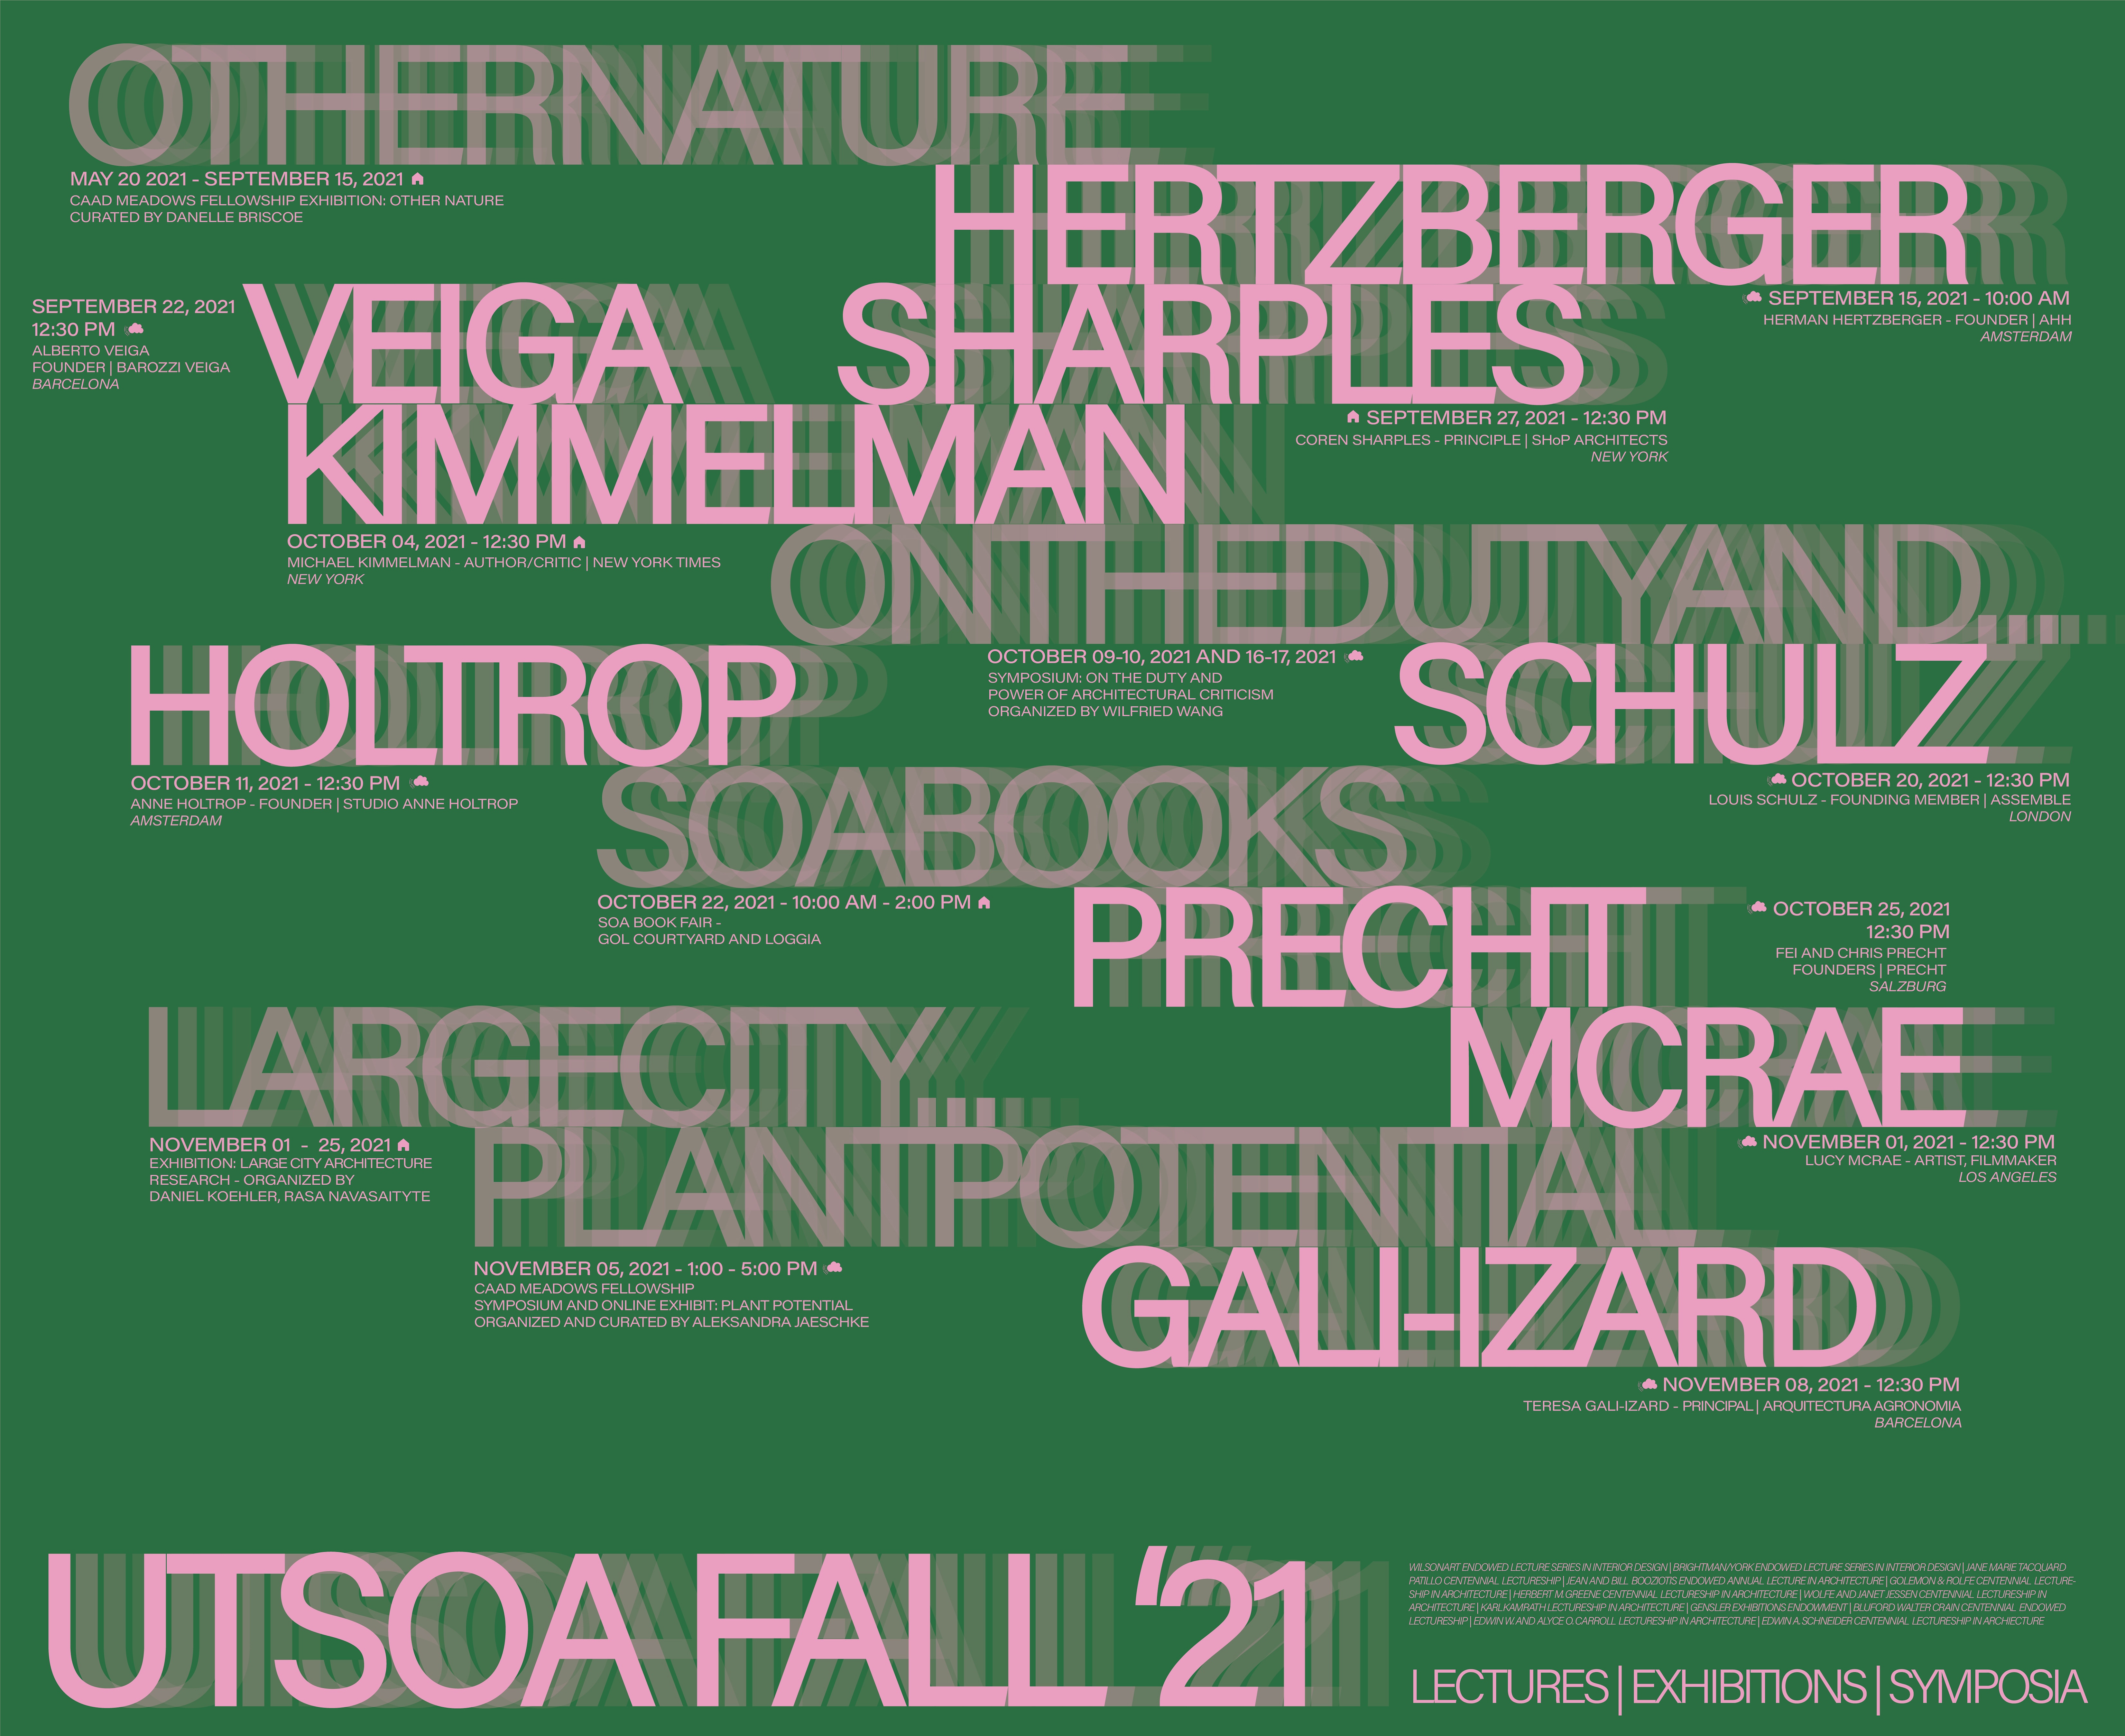 Fall 2021 lecture series poster. Features pink text on a green background.